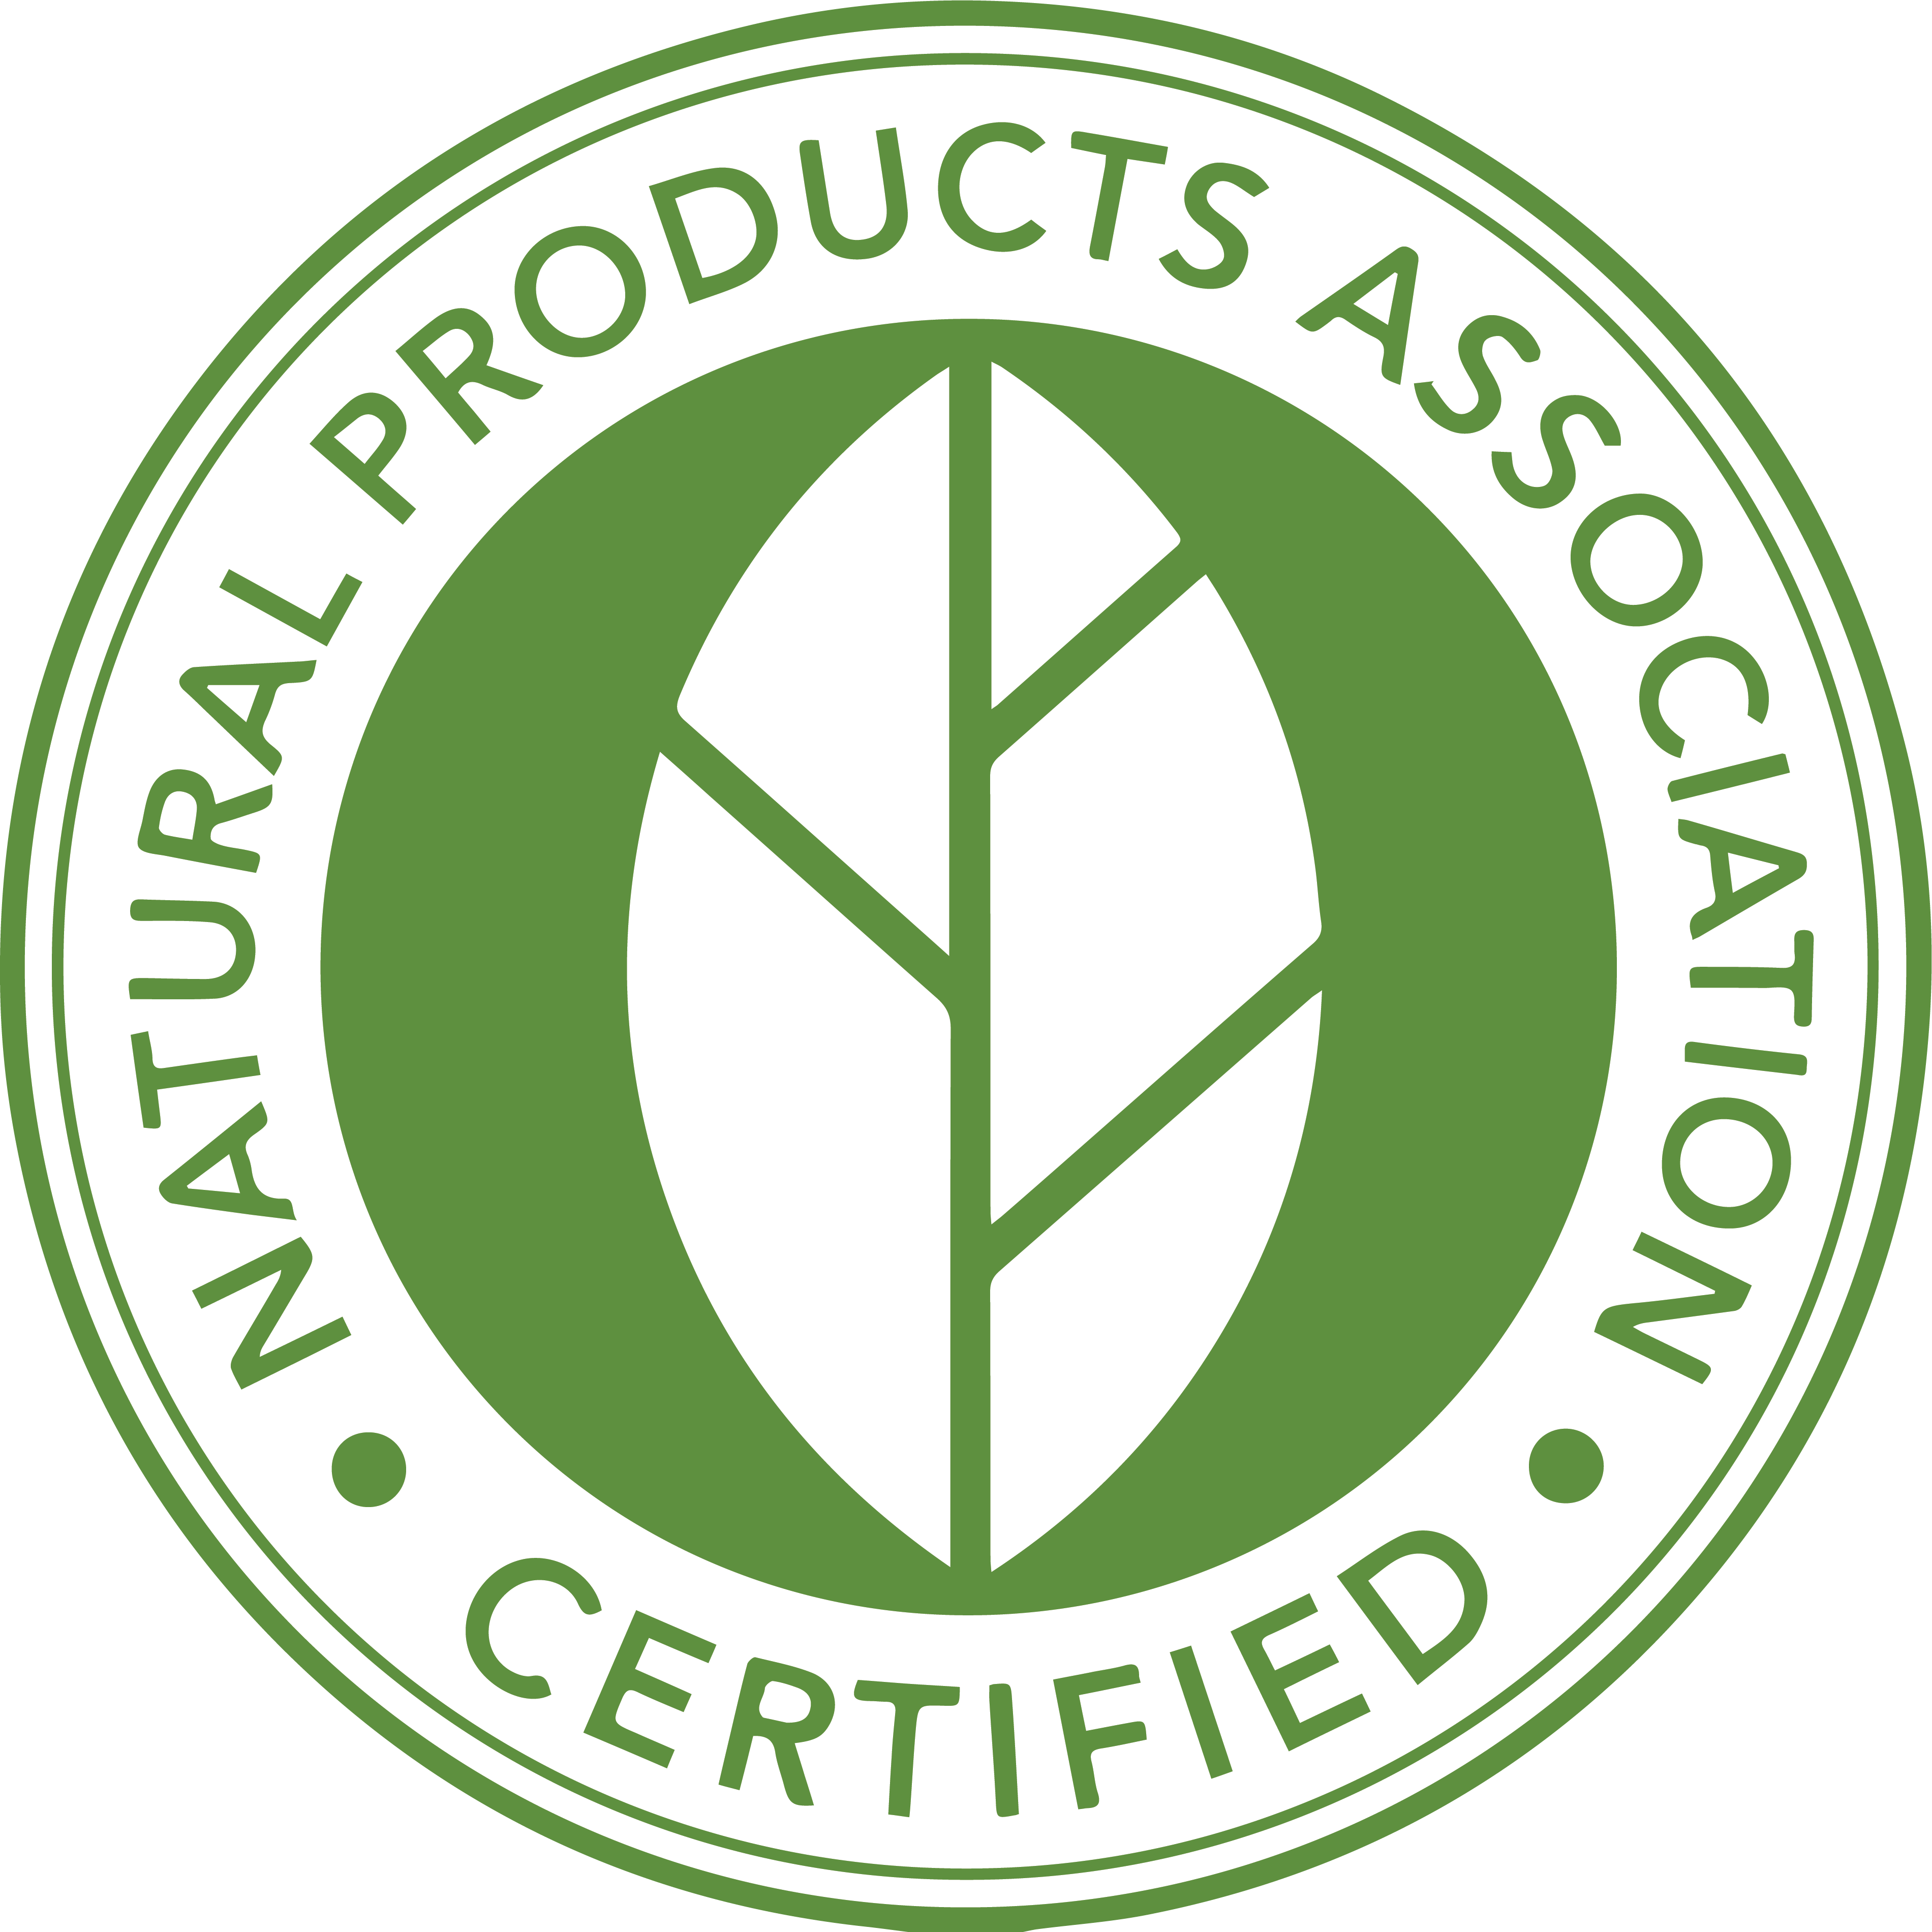 CERTIFIED NATURAL